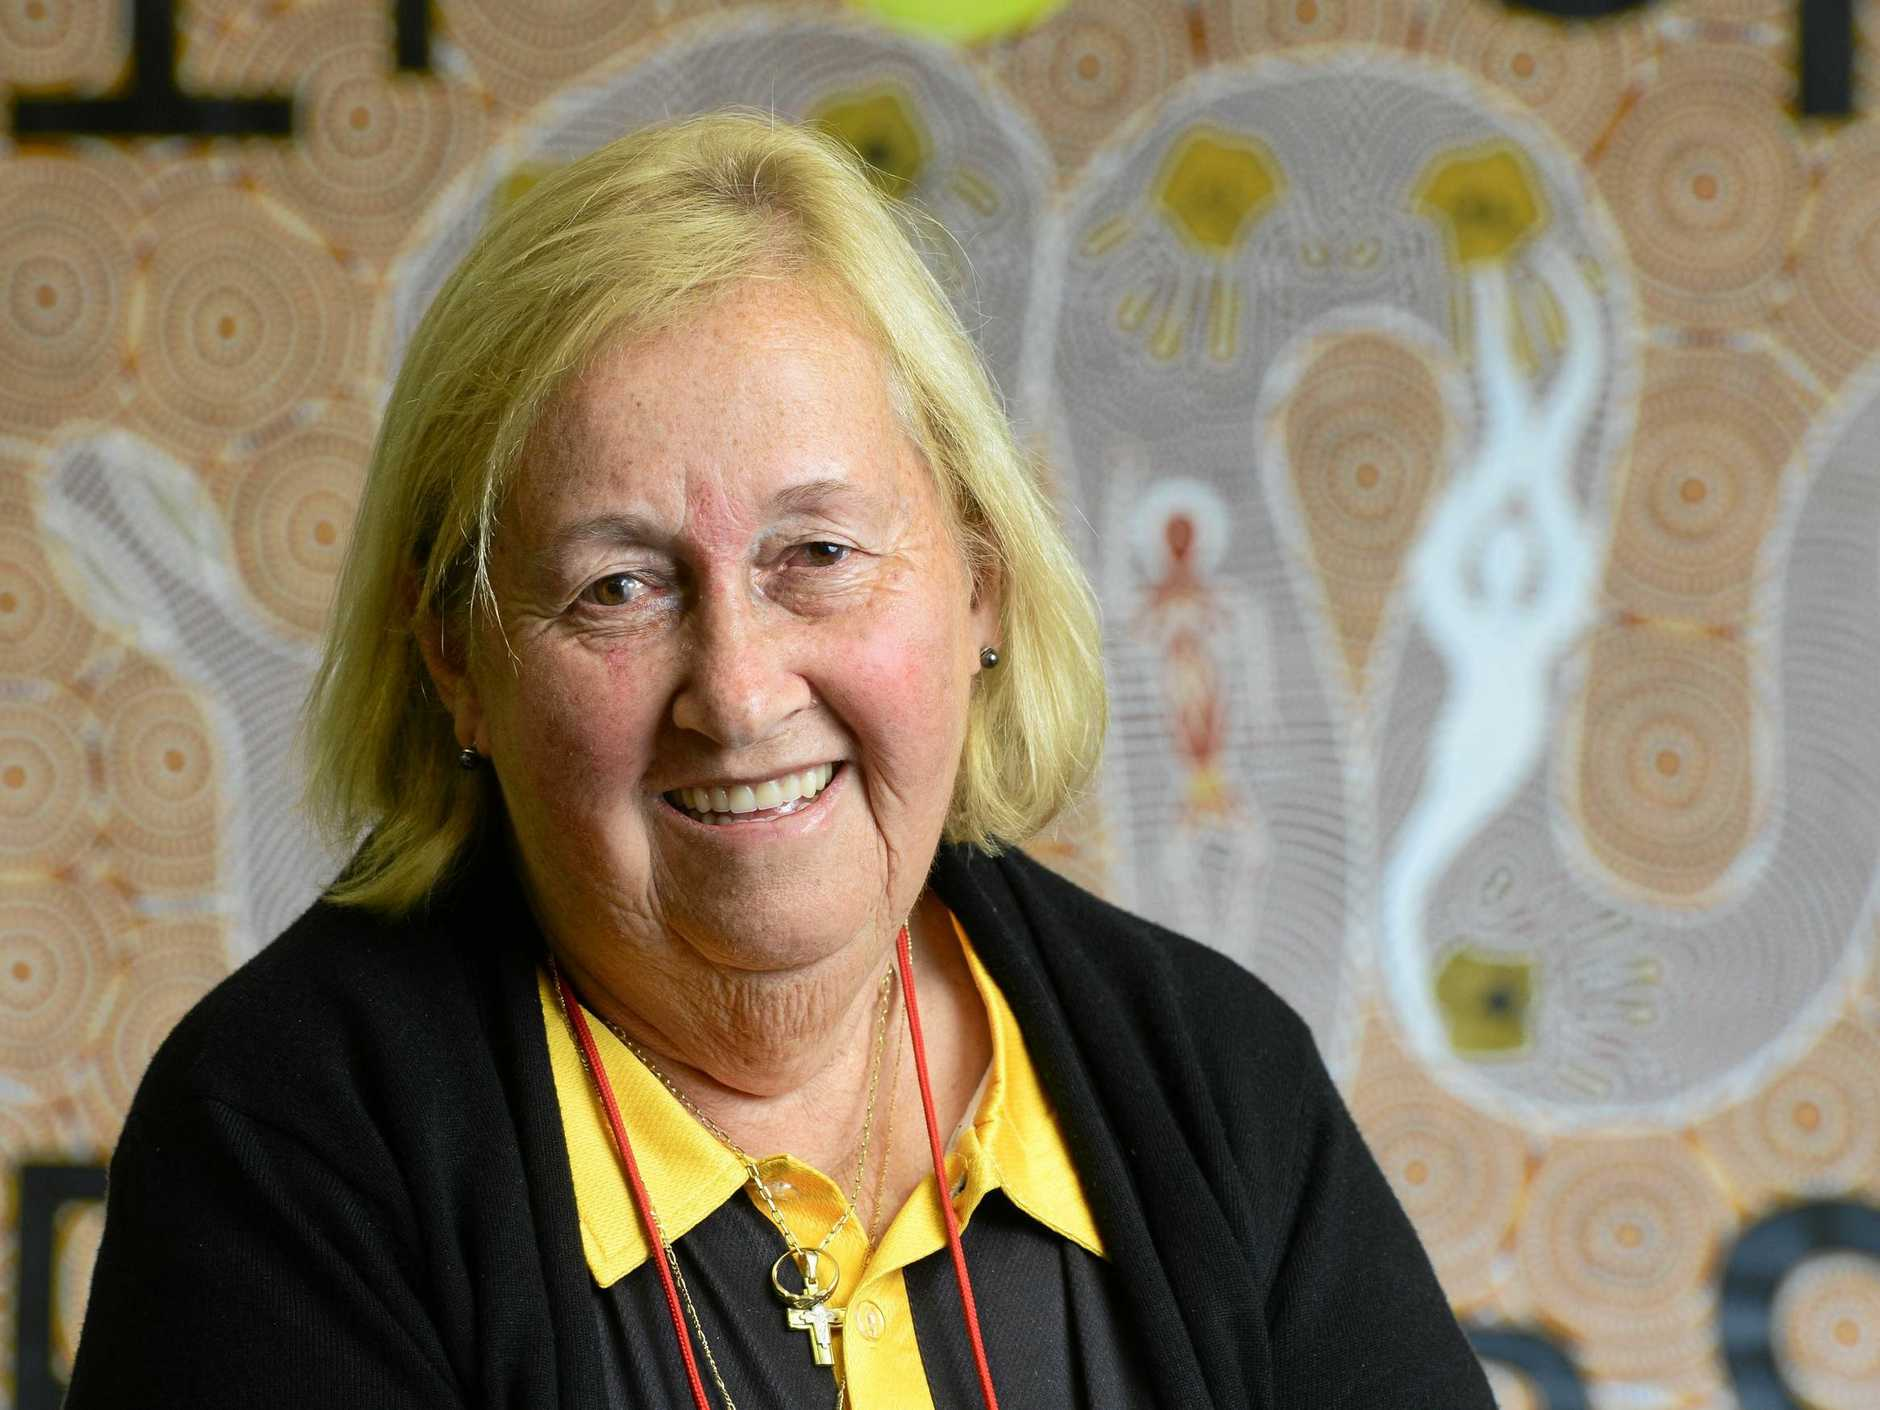 Aunty Faye Carr of Ipswich has been awarded the Naidoc Female Elder of the Year.